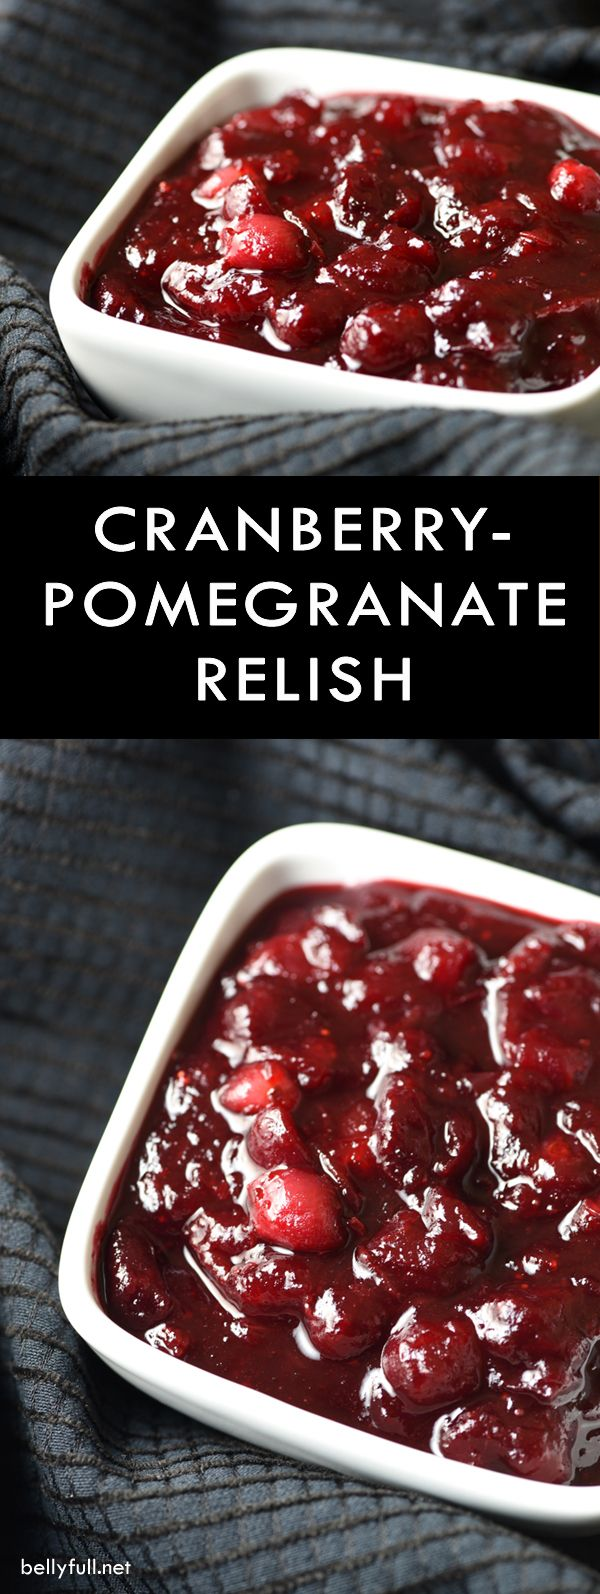 Holiday Cranberry-Pomegranate Sauce Recipe — Dishmaps